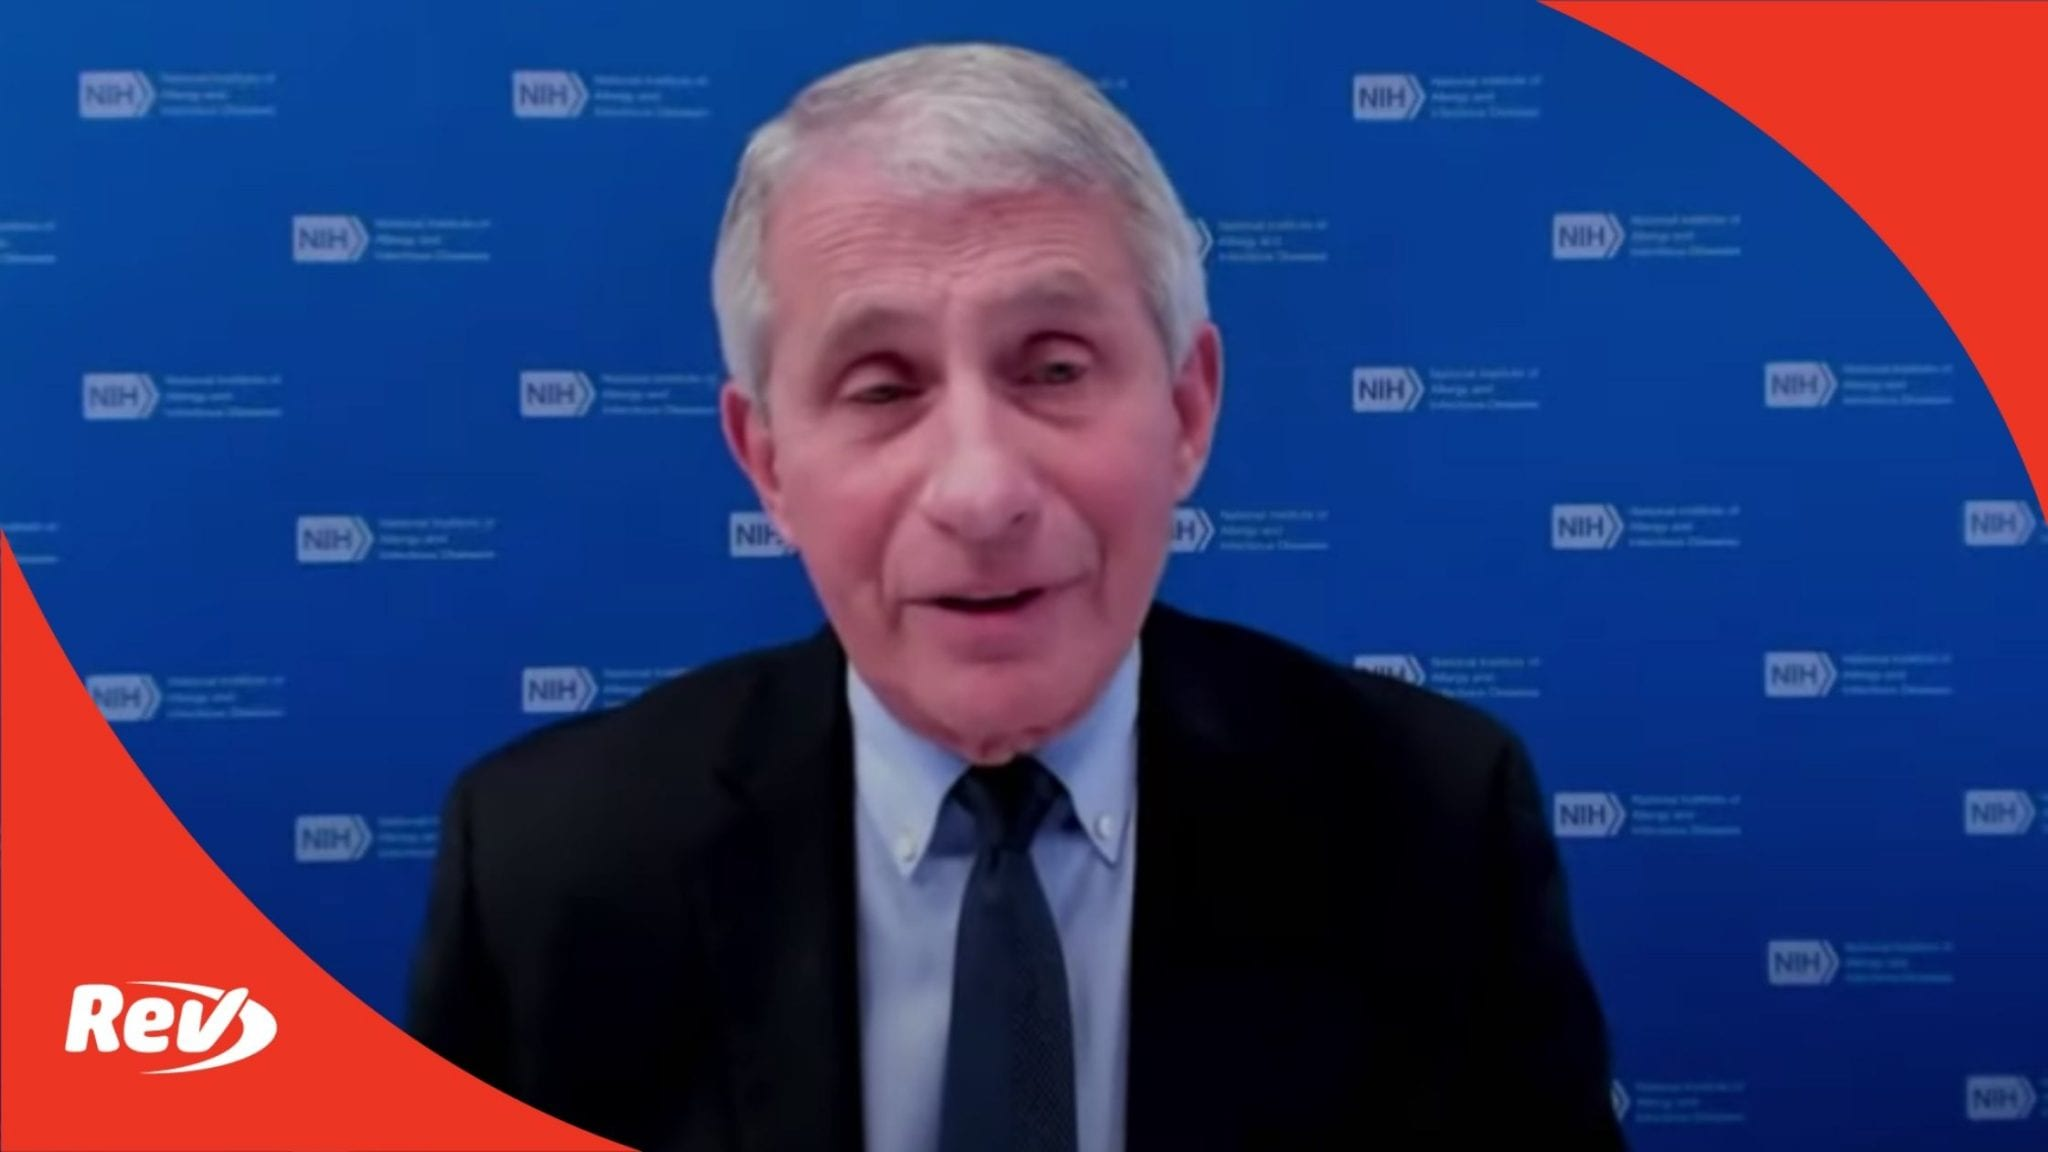 White House COVID-19 Task Force, Dr. Fauci Press Conference Transcript February 19